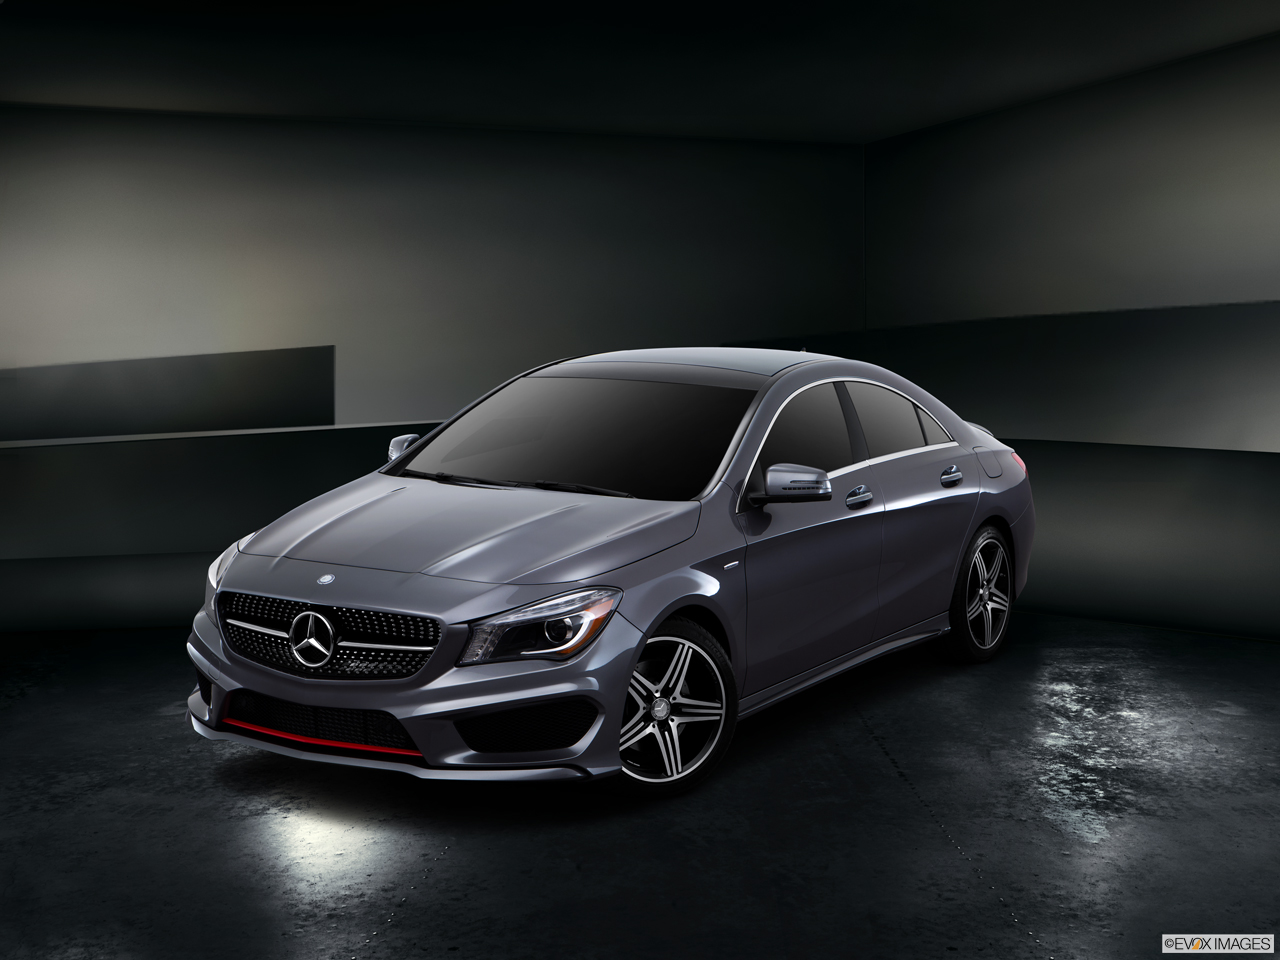 Car pictures list for mercedes benz cla class 2016 cla 250 for Wagner motors bmw shrewsbury